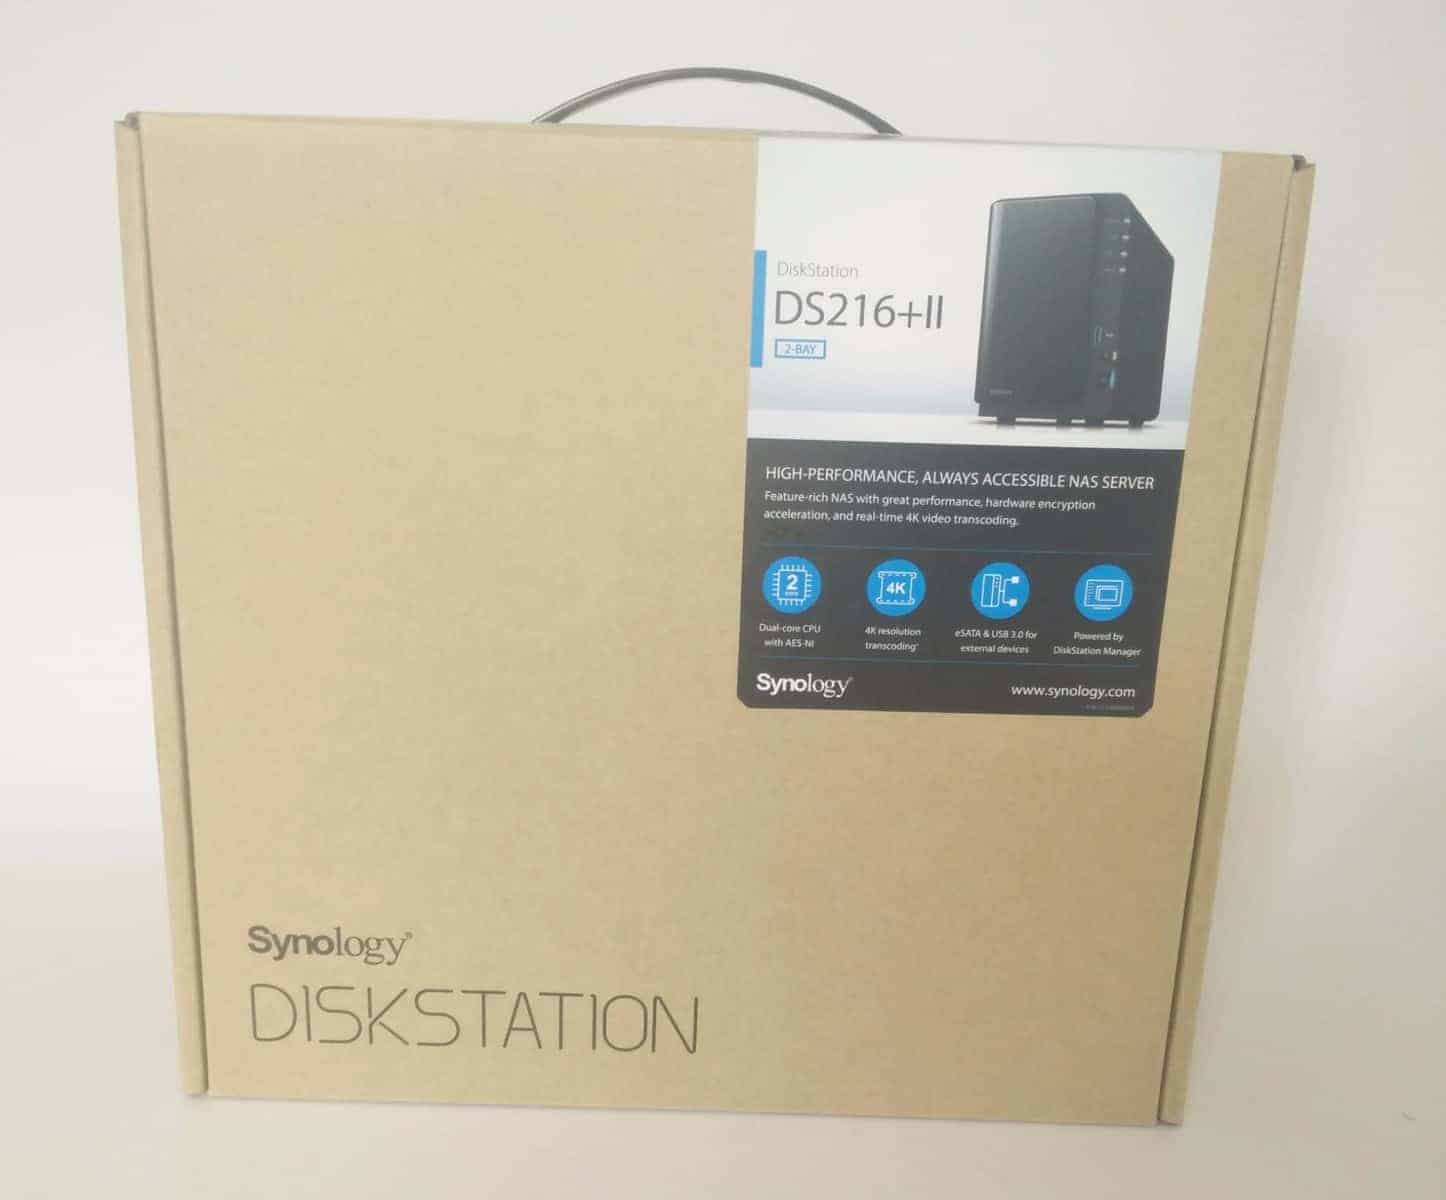 Synology-DS216II-Photo-01 Synology DS216+II 2 Bay NAS Review